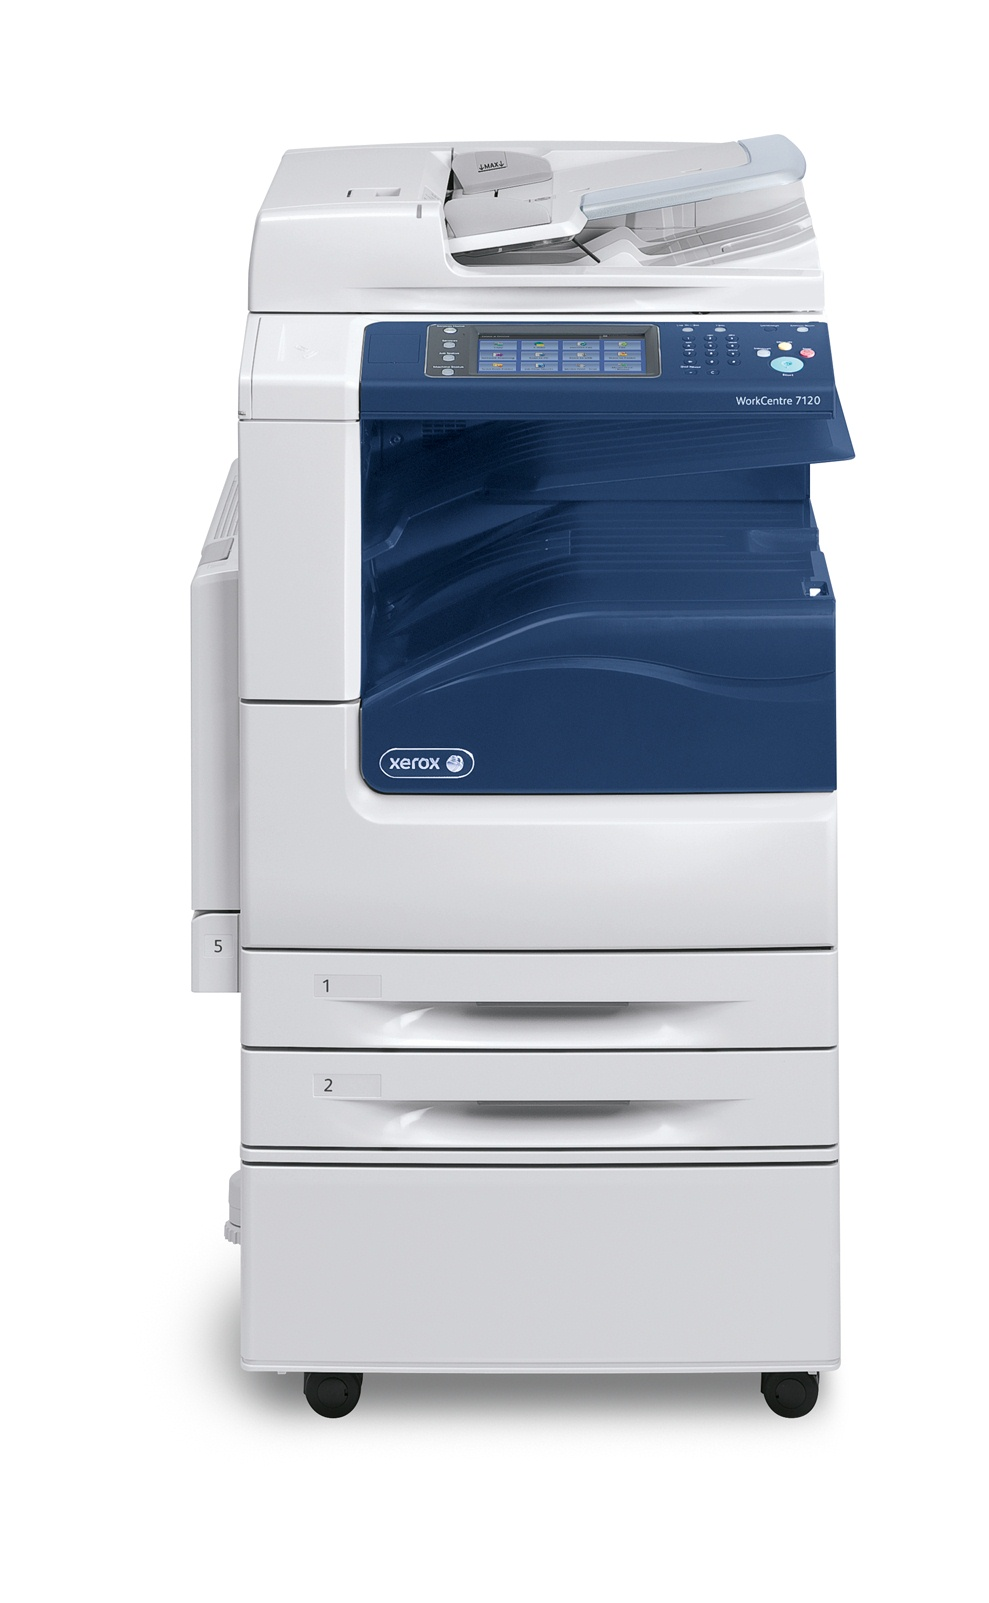 Xerox workcentre 7120 details the